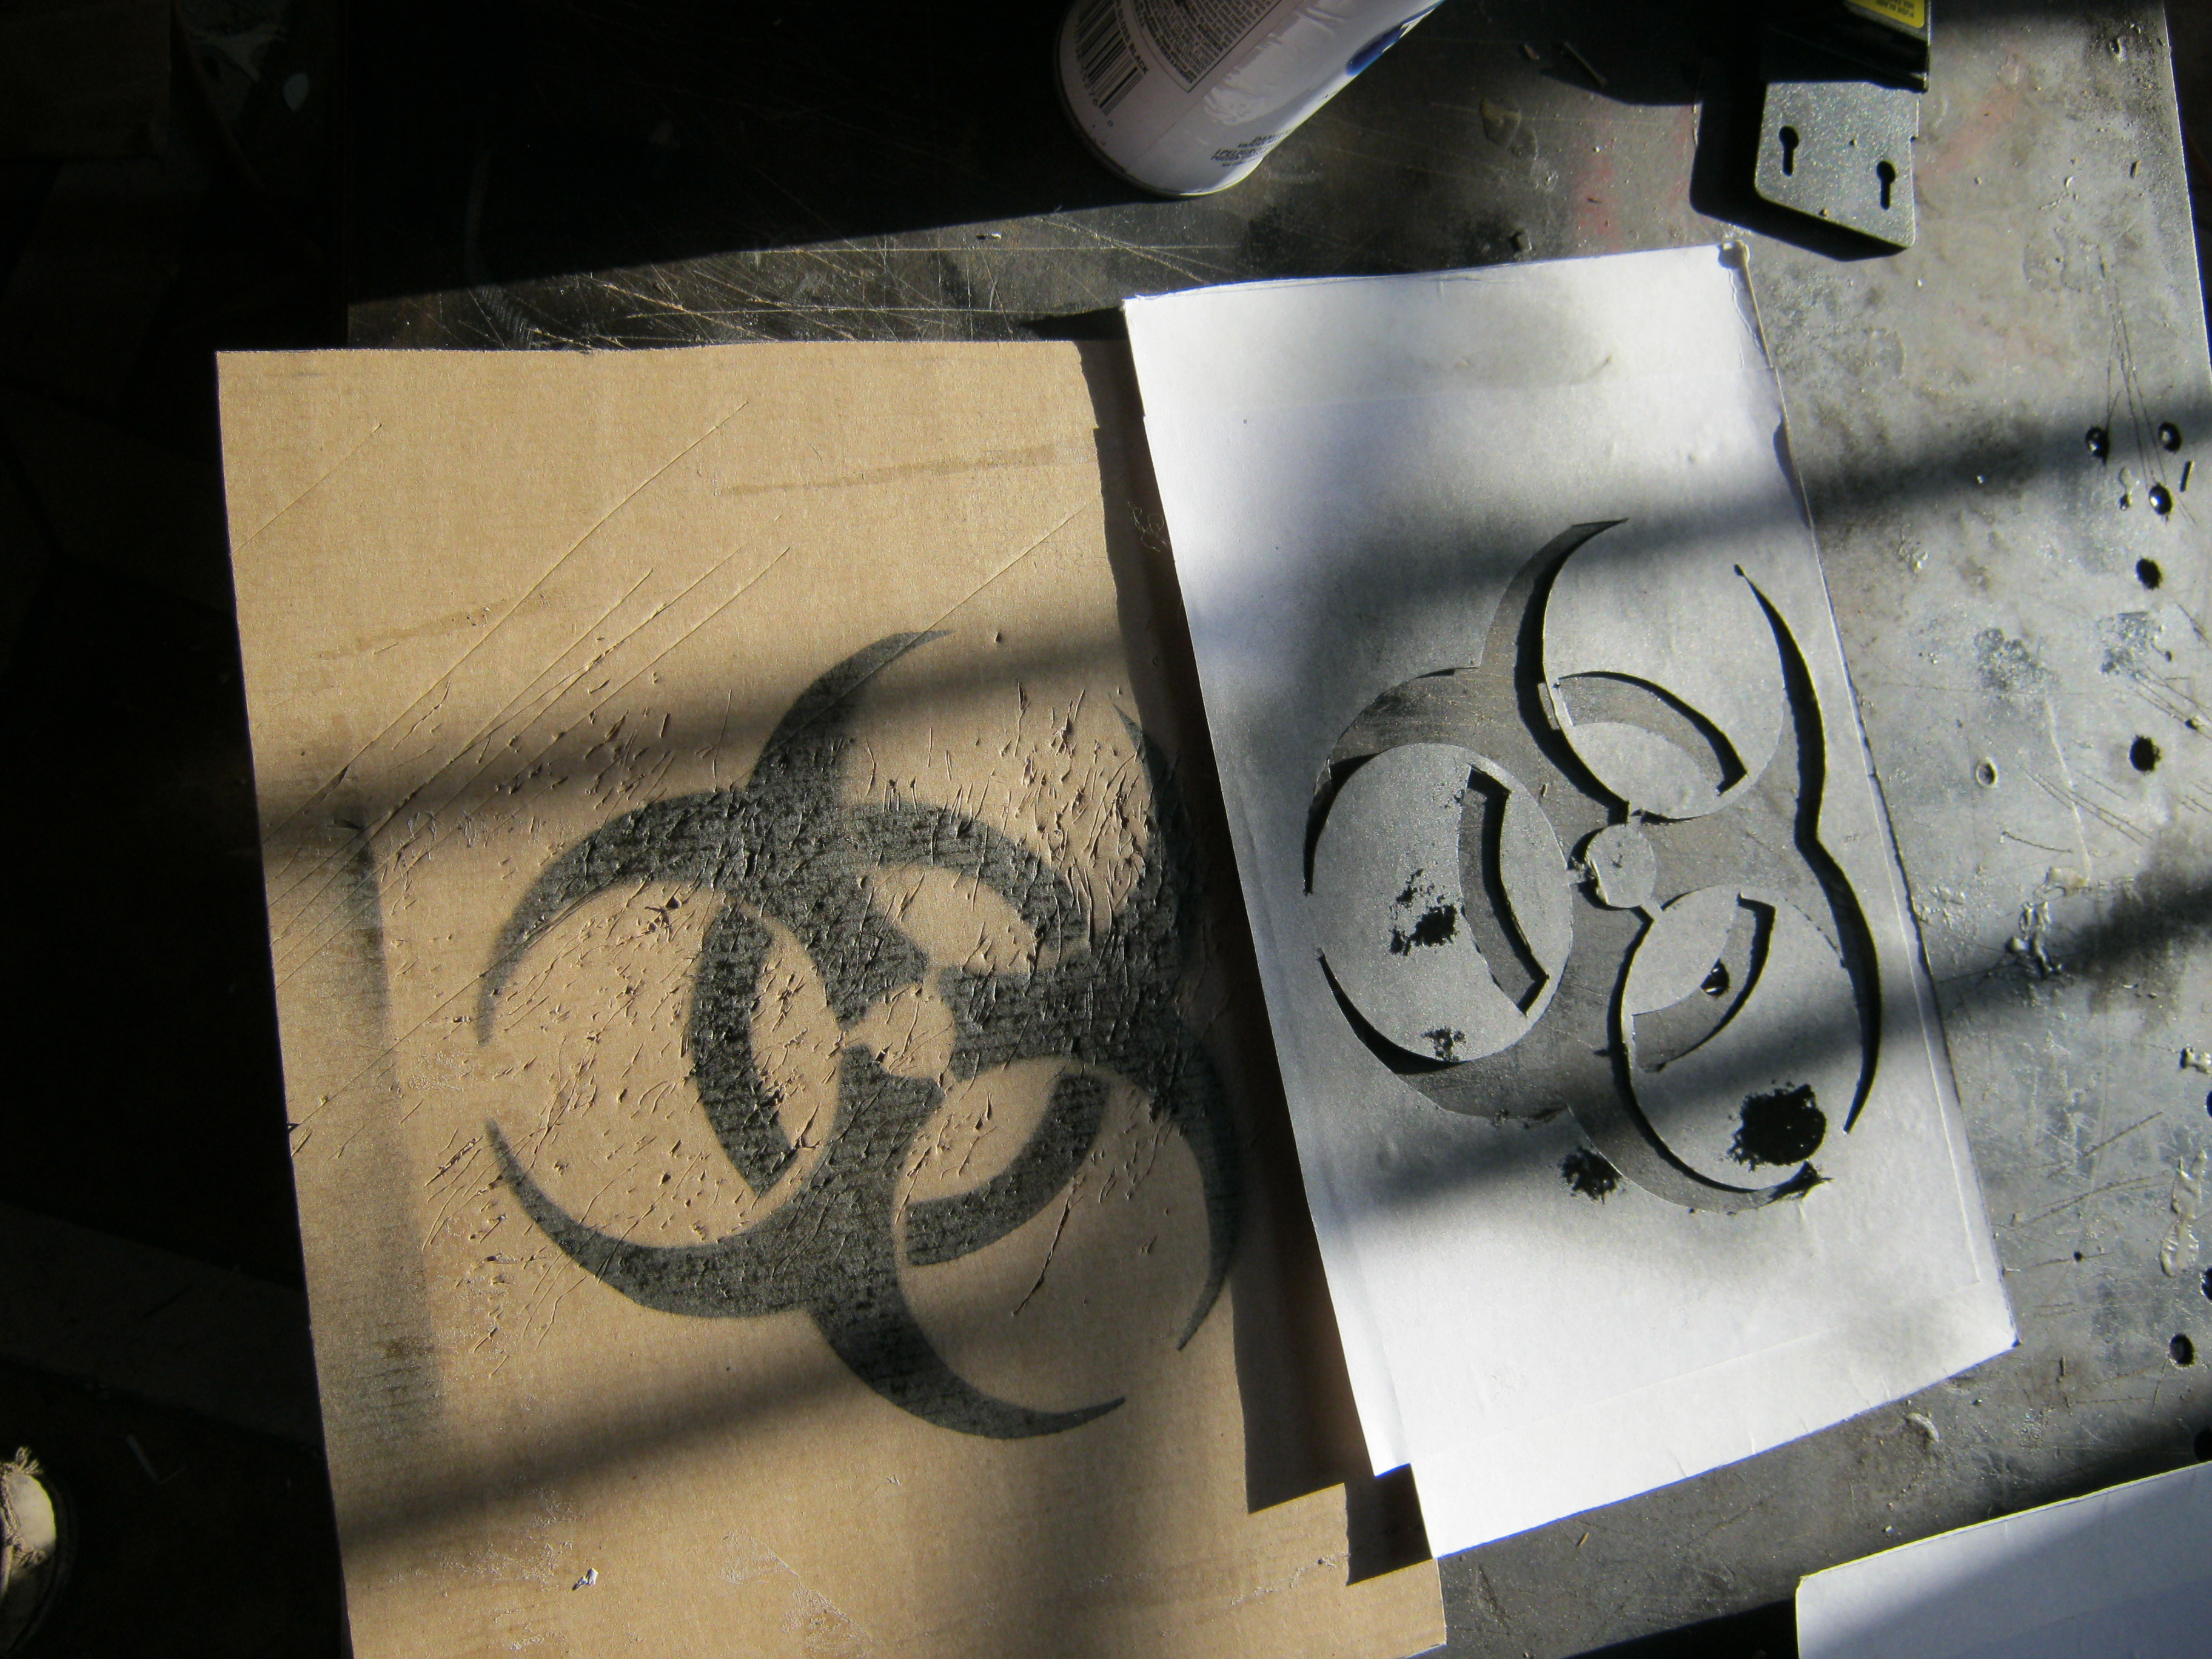 stencils are easy (usualy)